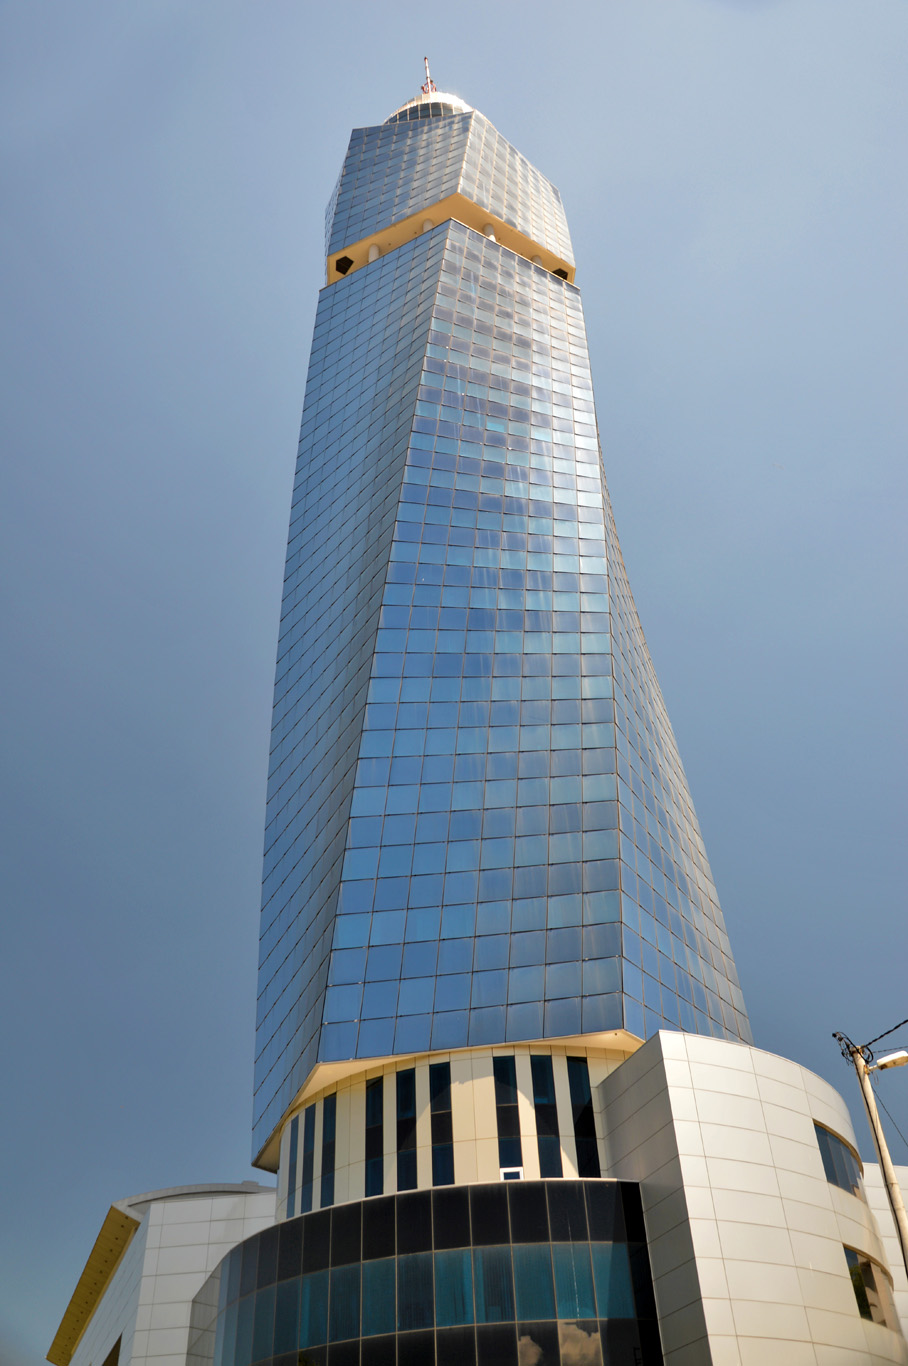 Avaz Twisted Tower